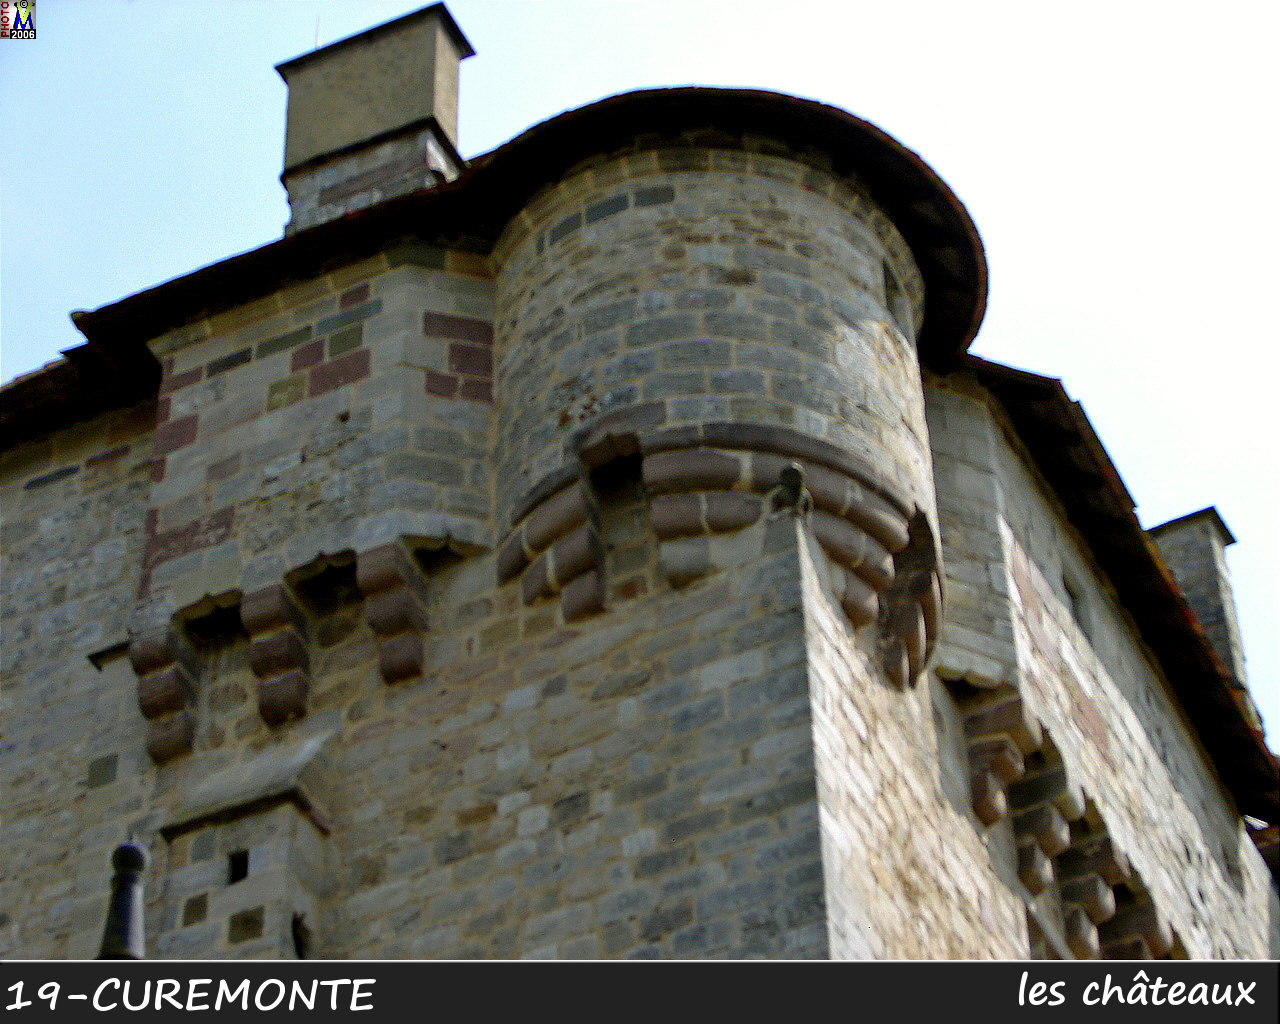 19CUREMONTE_chateau_160.jpg